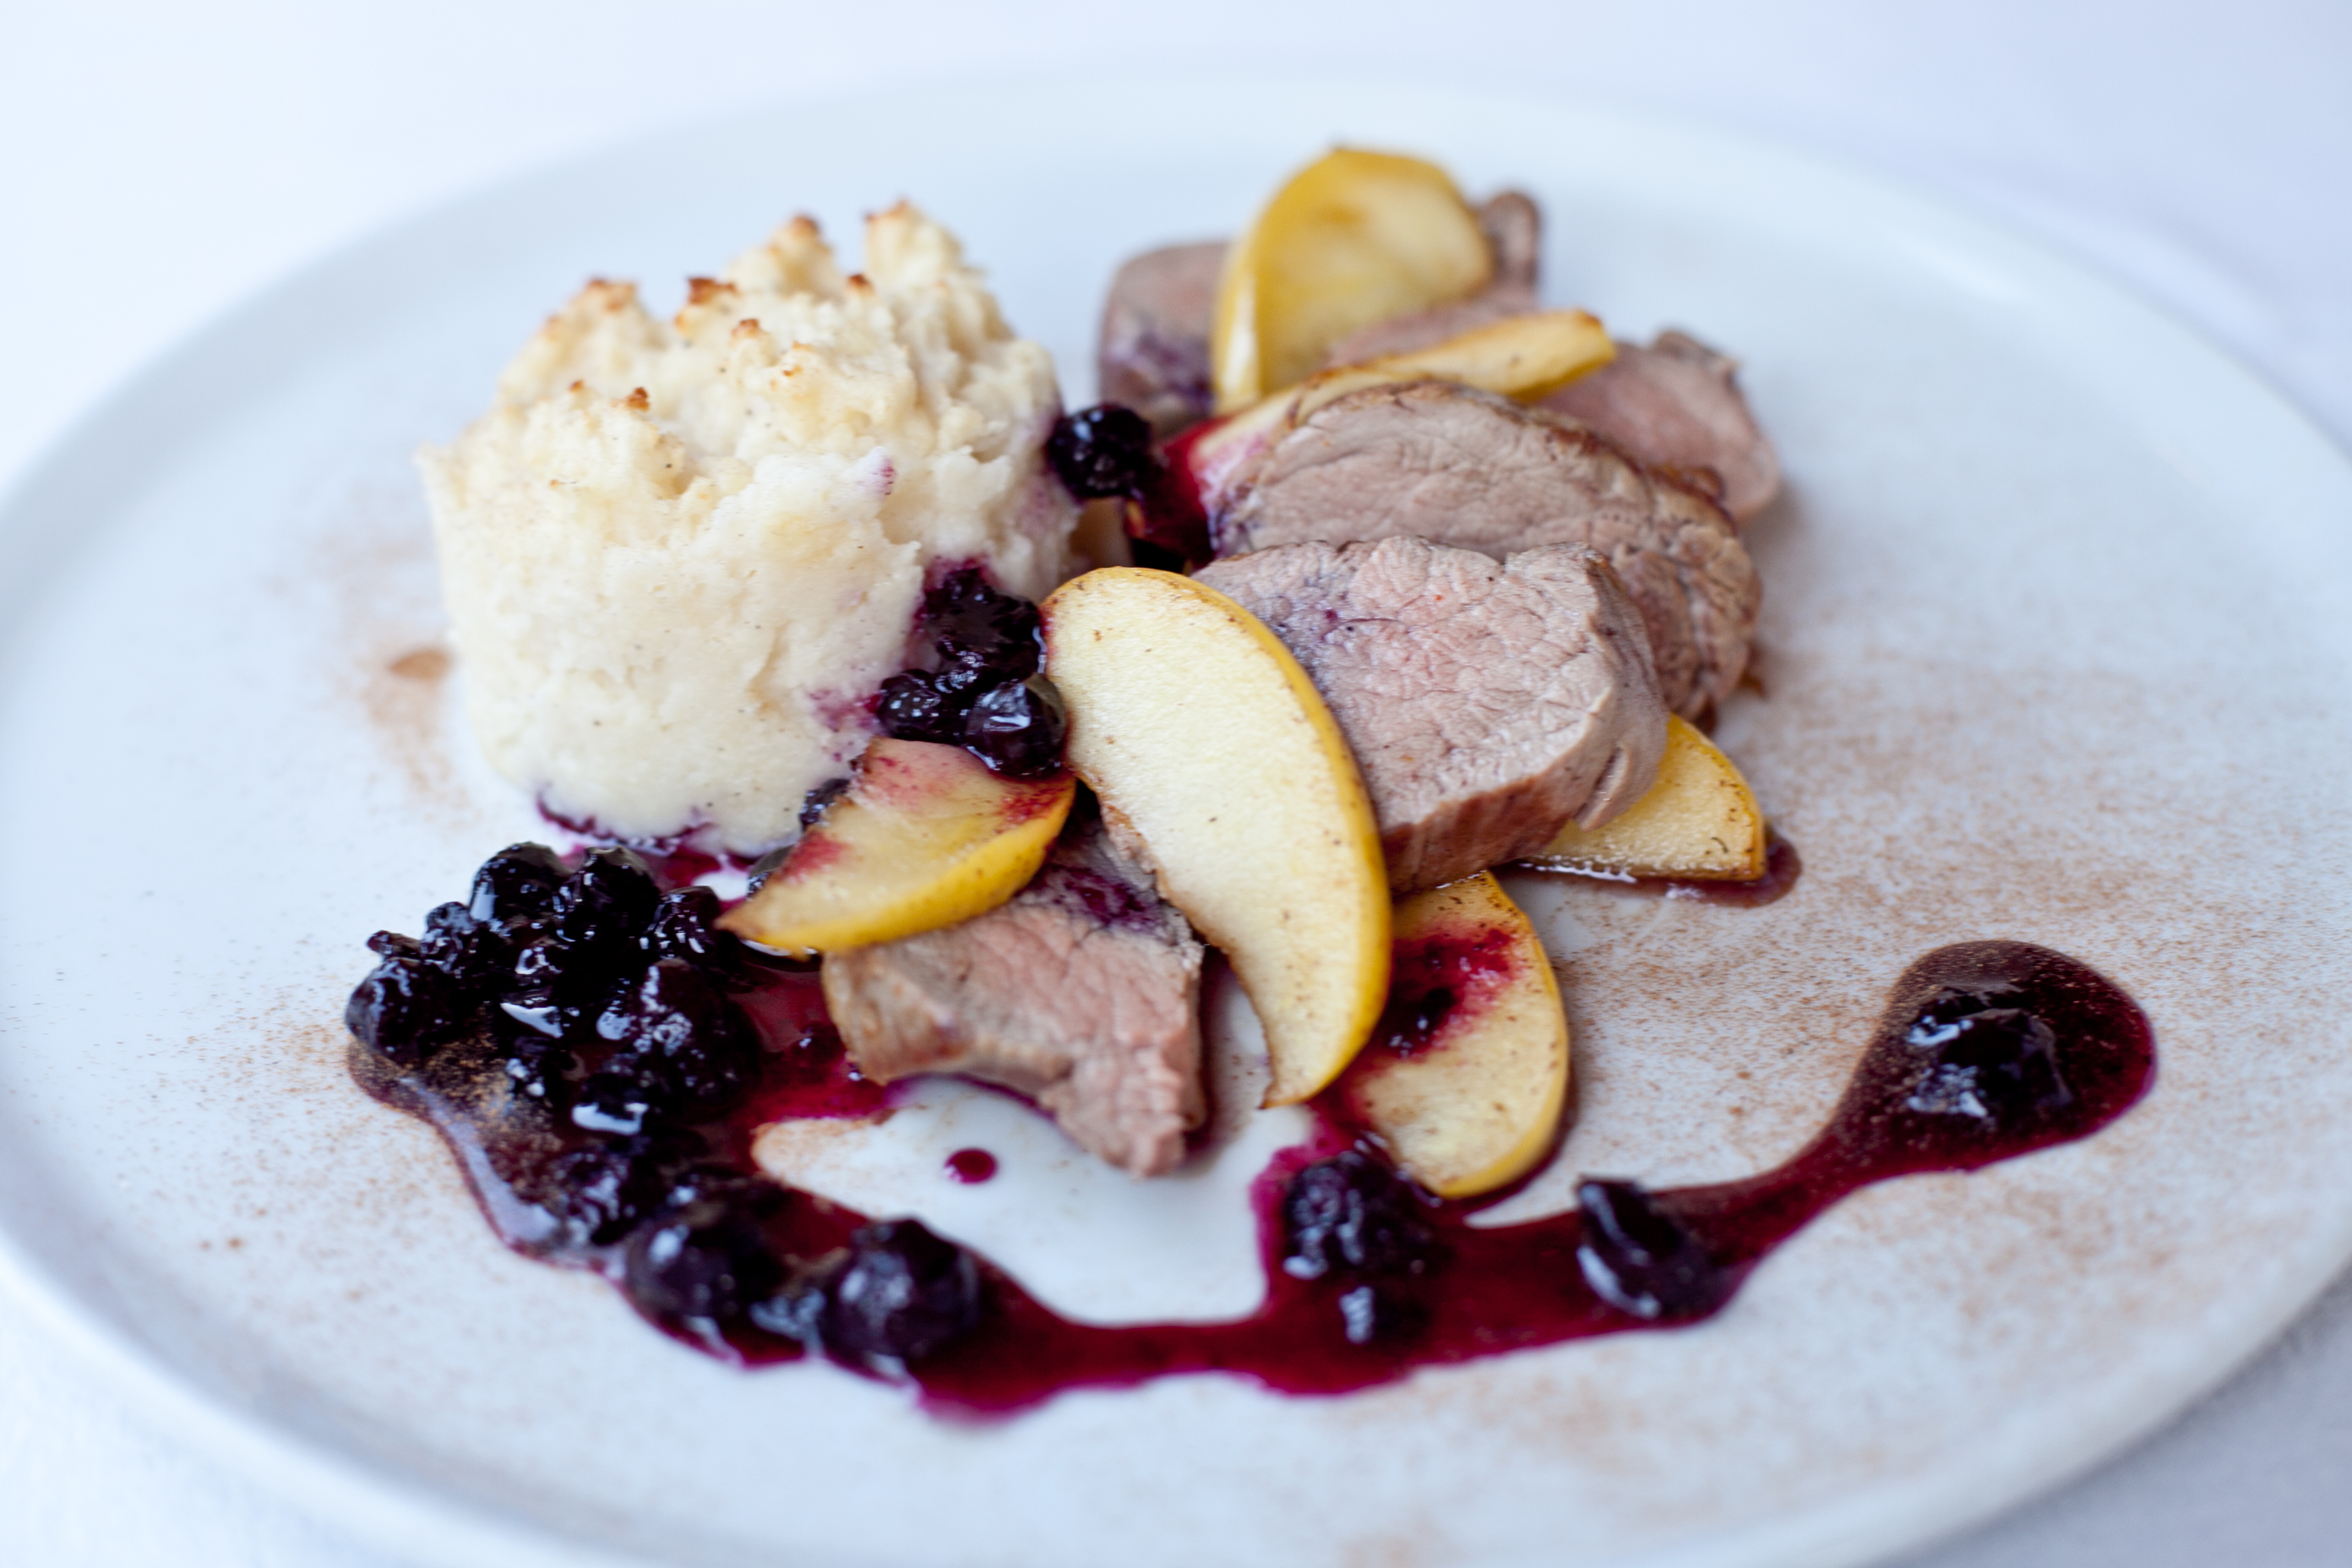 Pork fillet with mashed potato, caramelized apple and cranberry